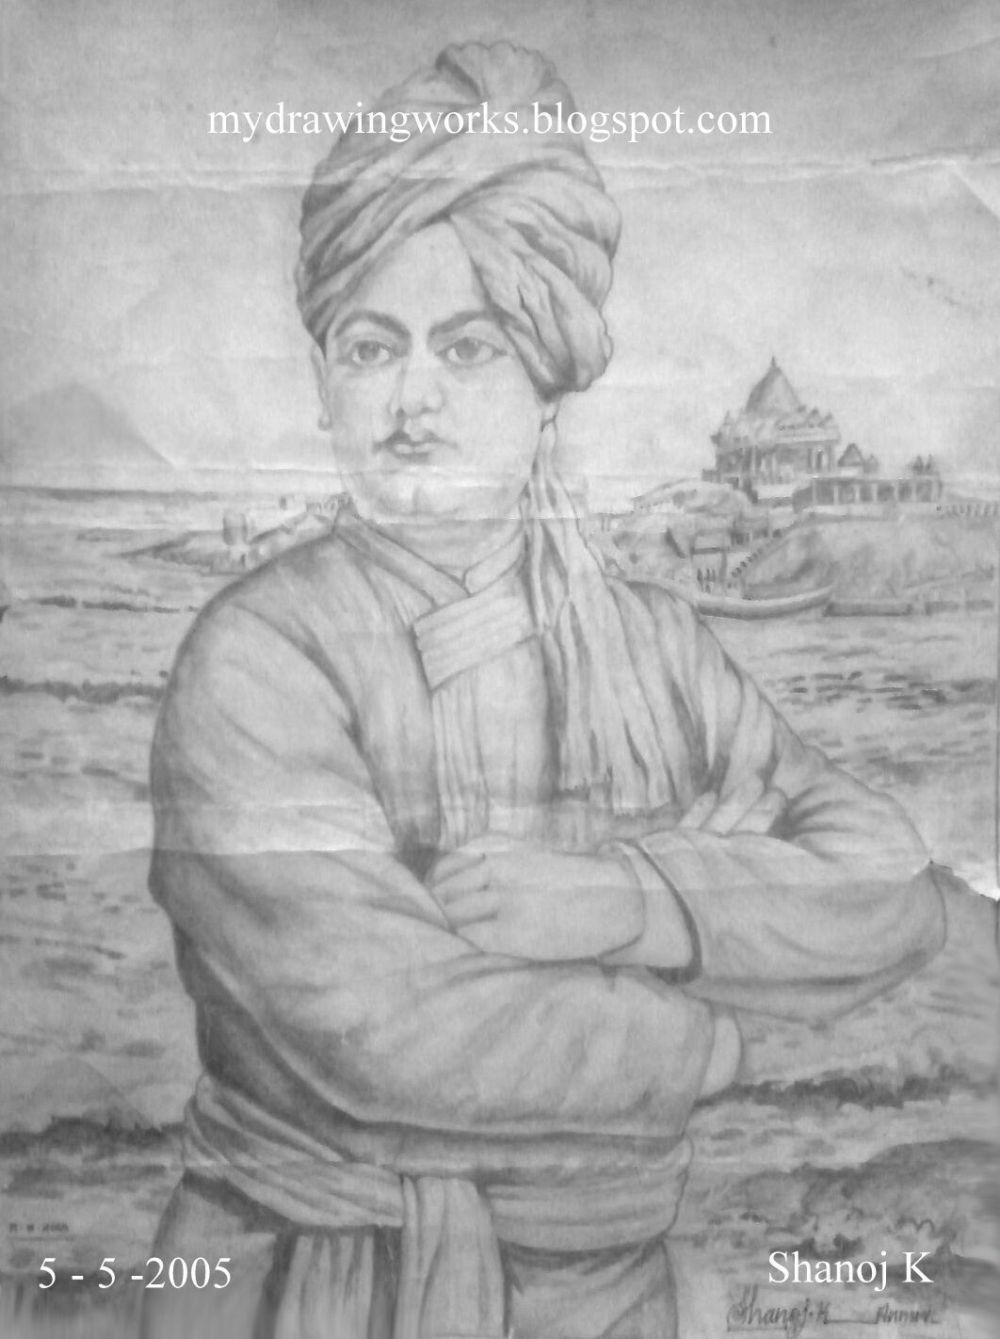 Swami vivekananda pencil drawing